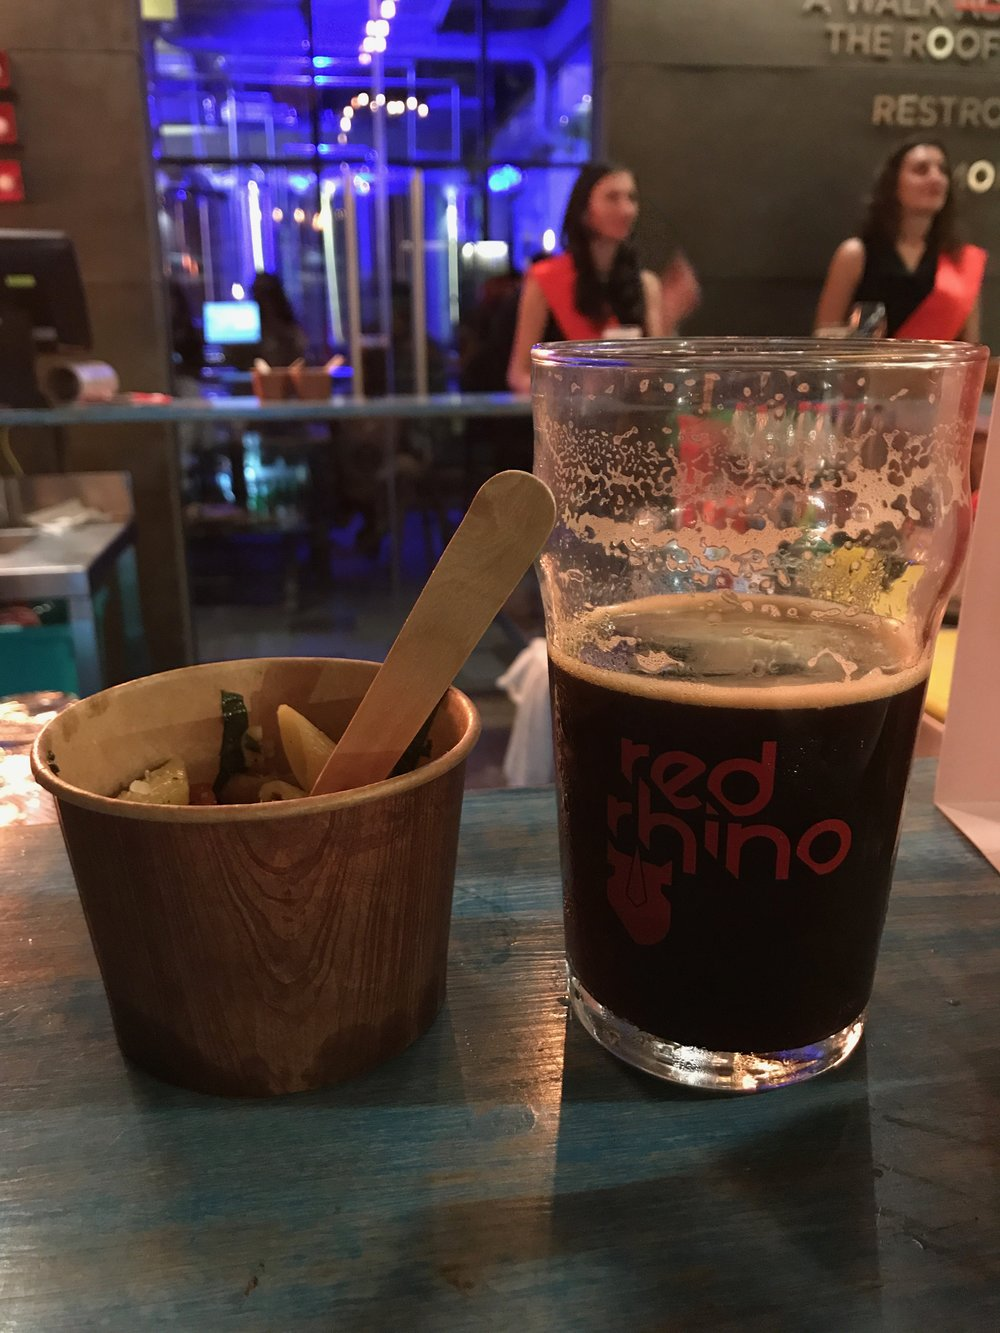 Microbrewery | Red Rhino | Stout Beer and Thai Noodles Bengaluru | PritishSocial | Food Blogger